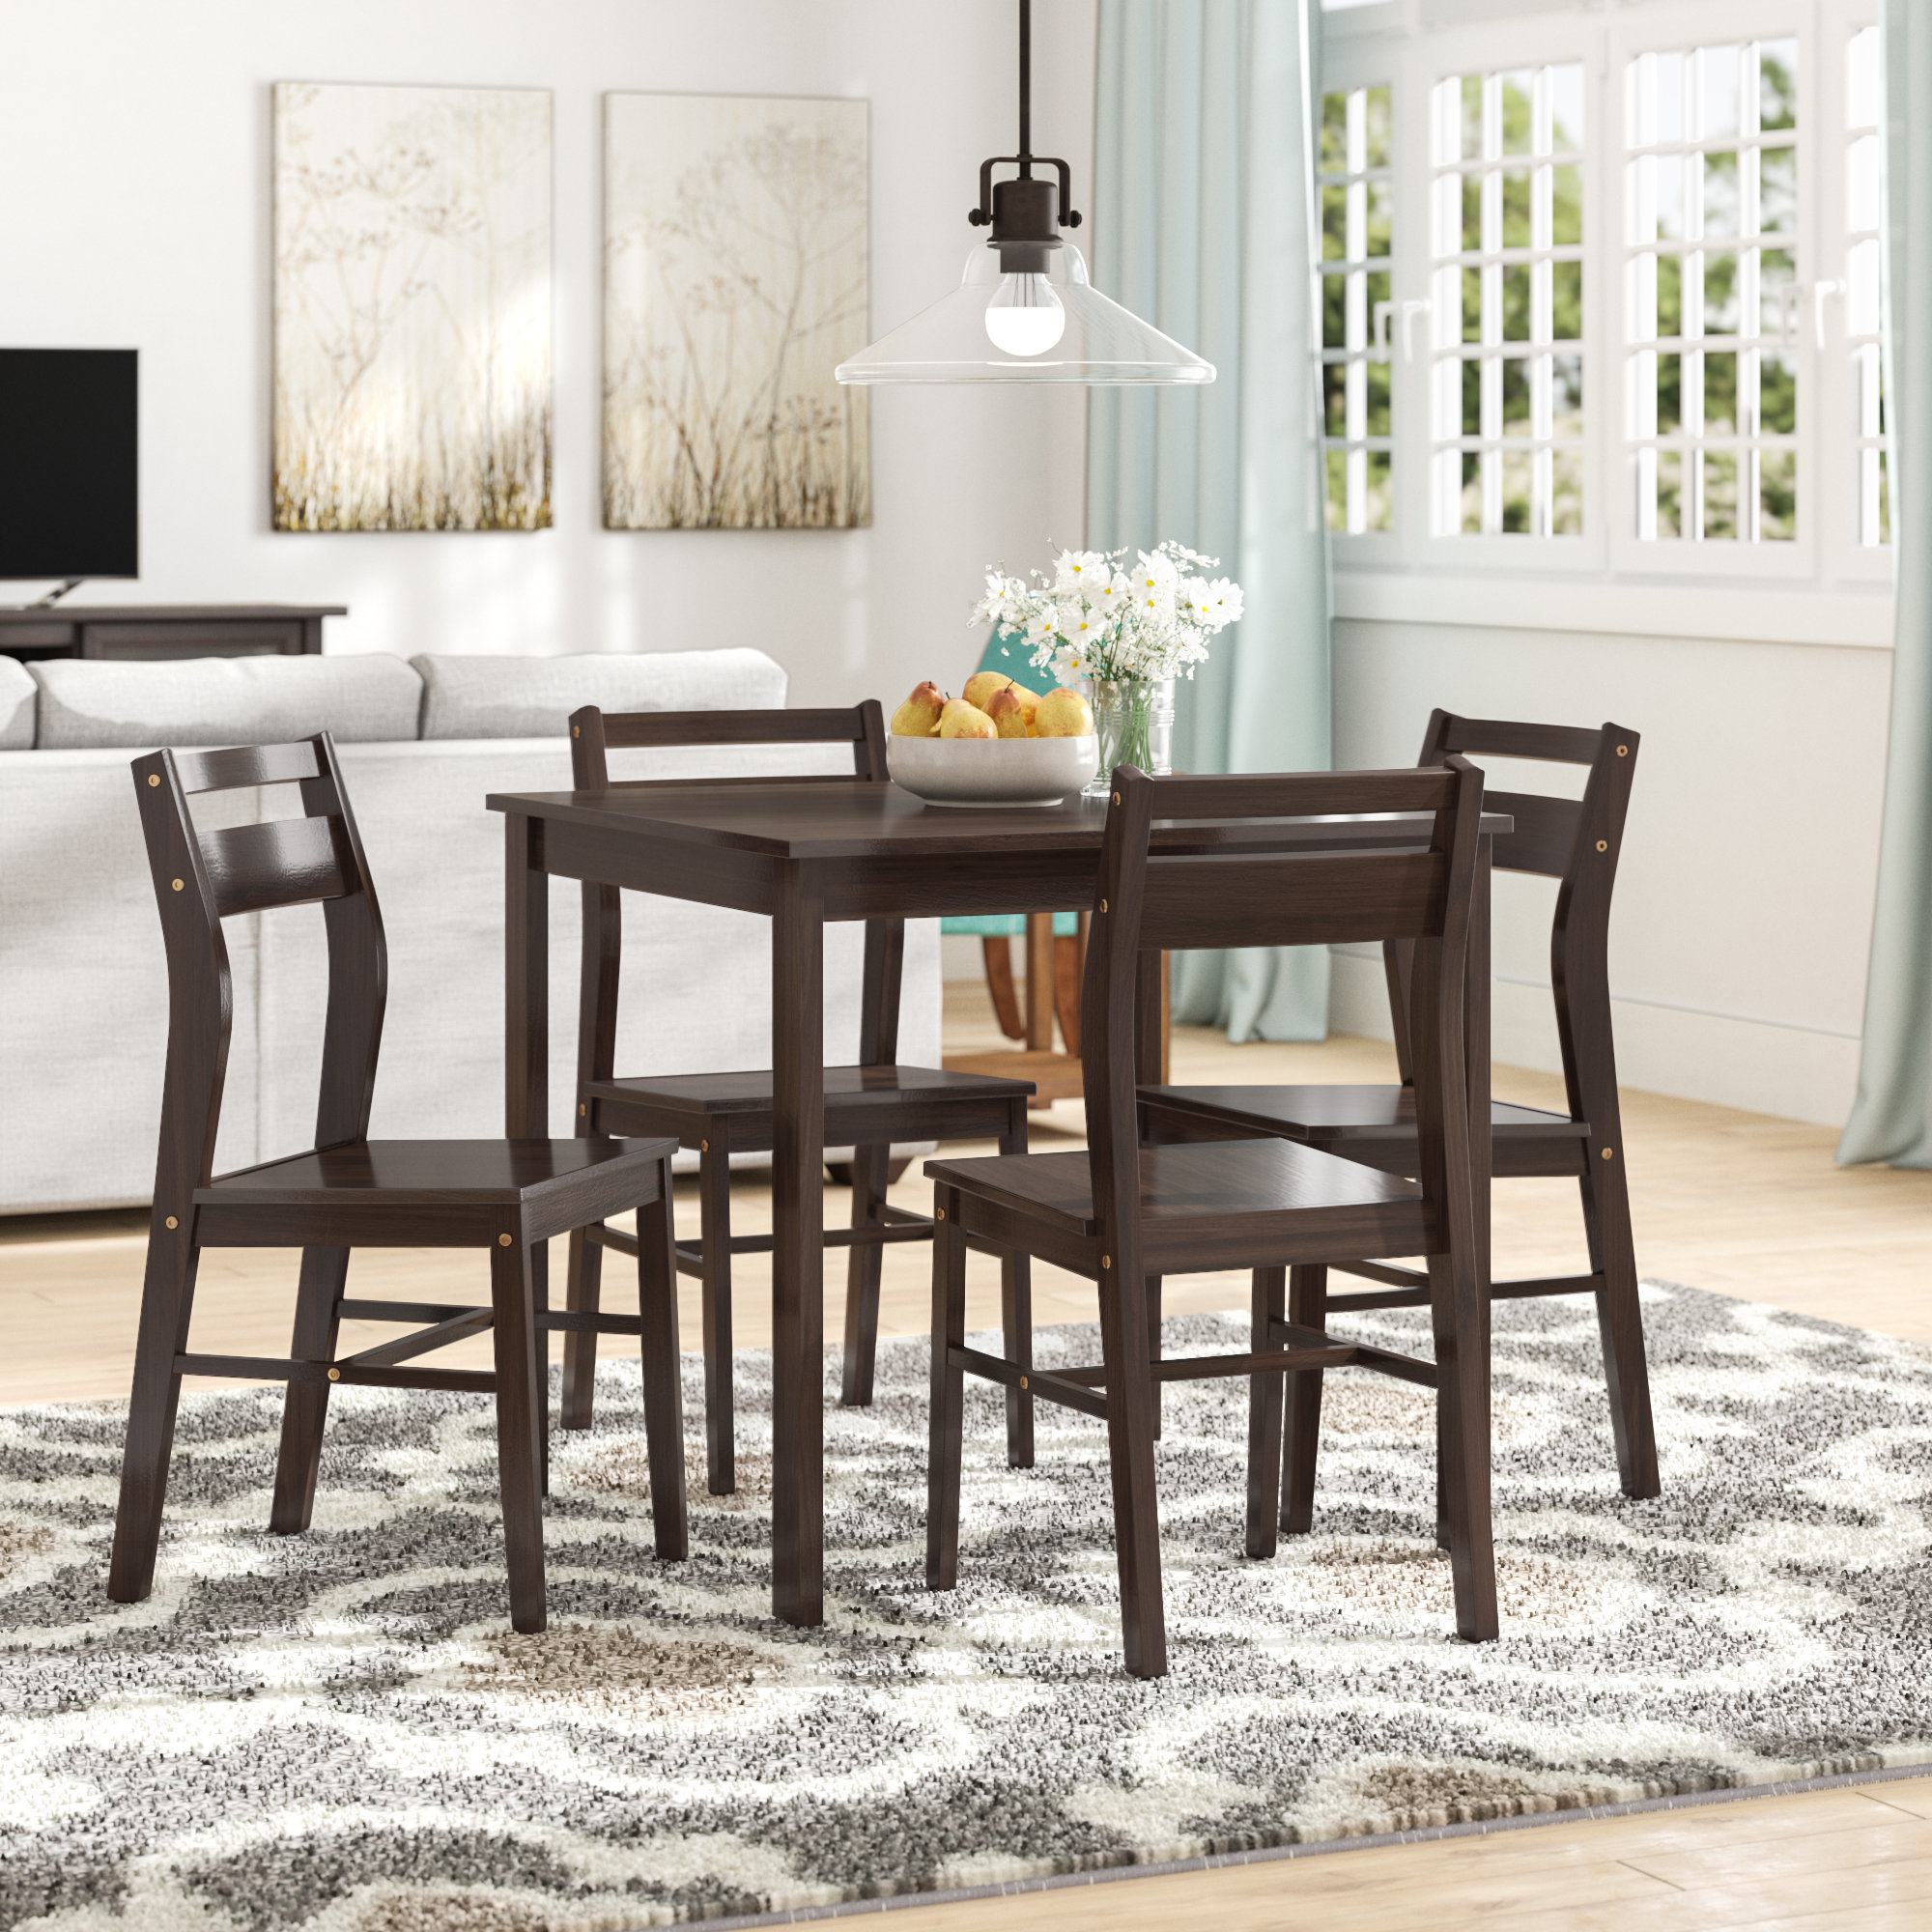 Wayfair Throughout Favorite Weatherholt Dining Tables (View 10 of 25)